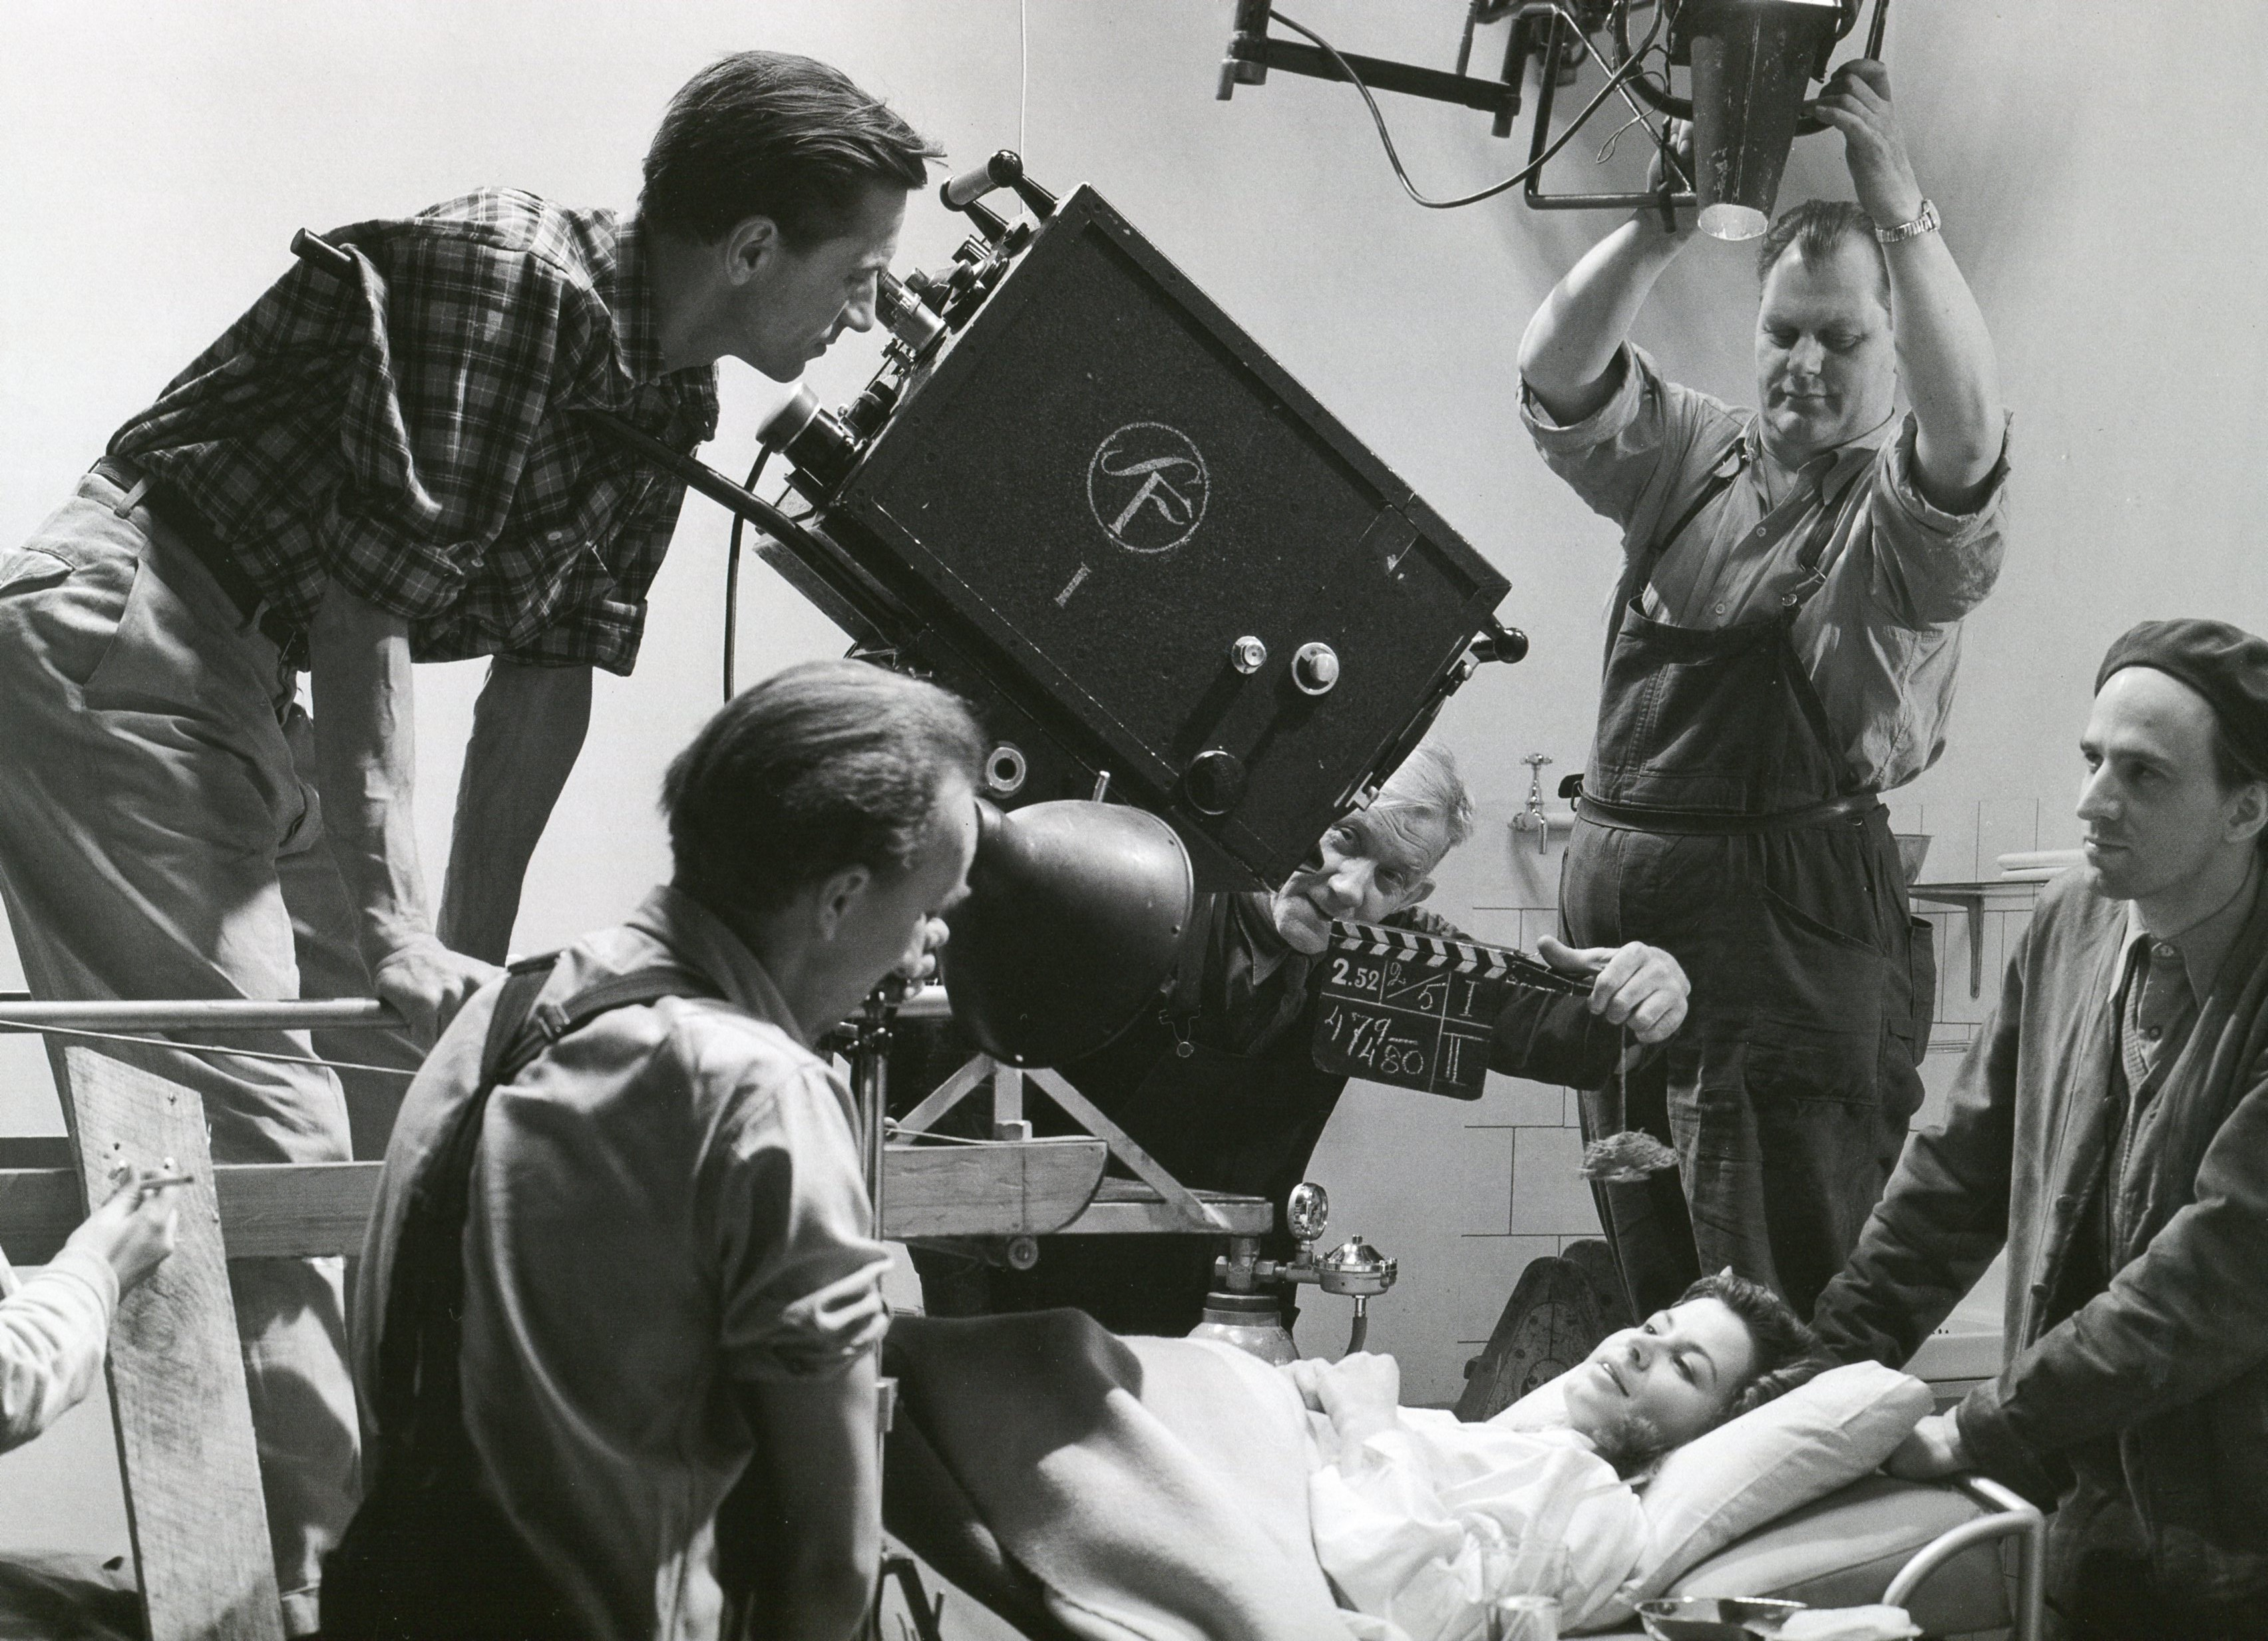 Cinematographer Gunnar Fischer (behind the camera) during the filming of Waiting Women, to the right of Ingmar Bergman and the bed Maj-Britt Nilsson.